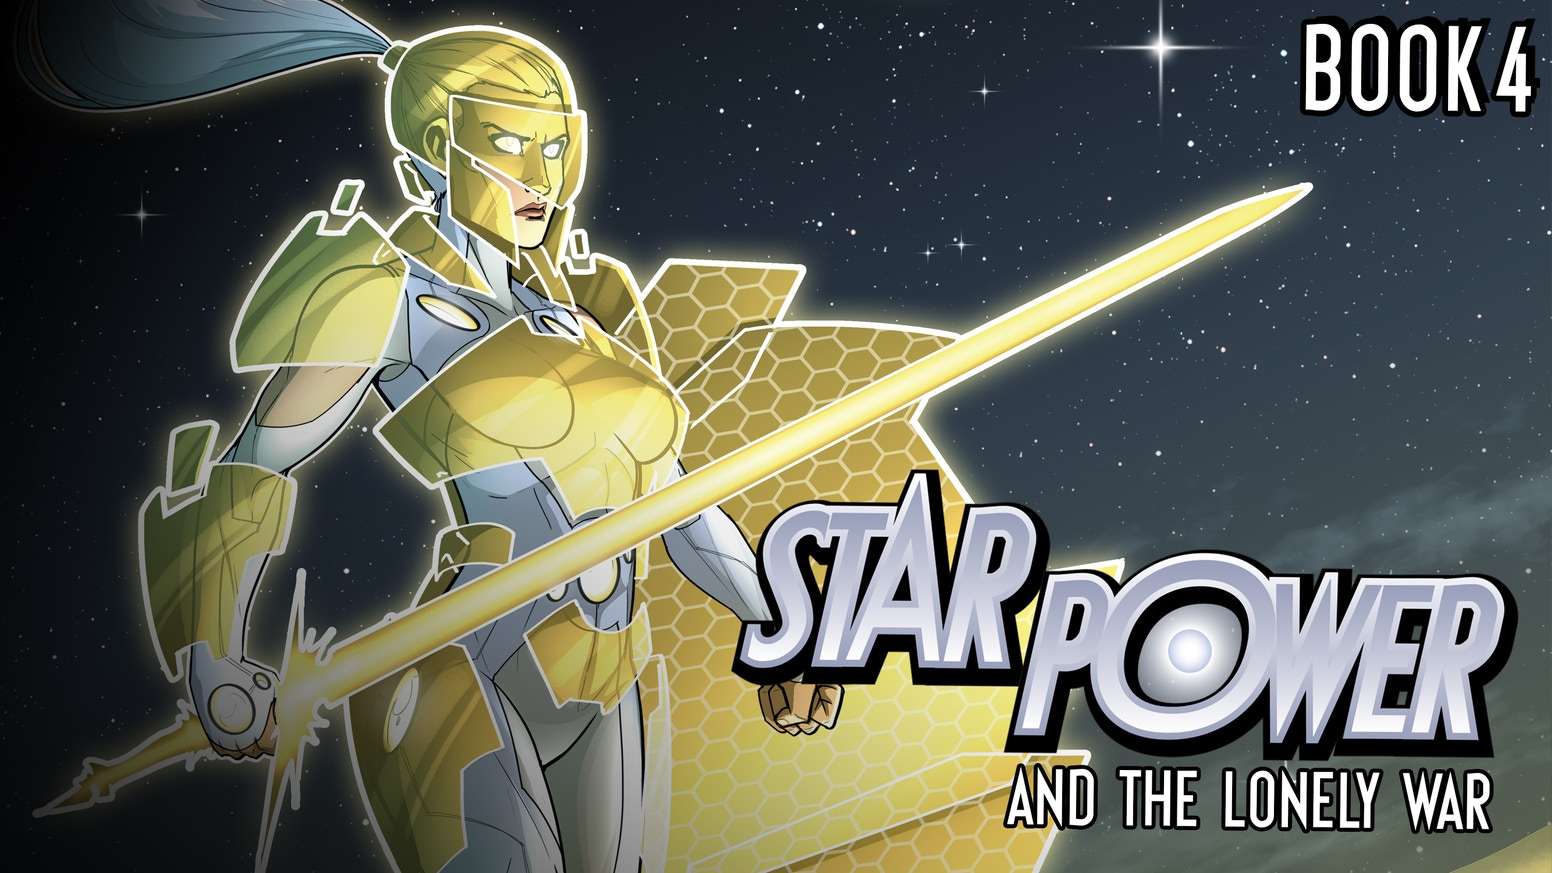 Danica Maris, astronomer turned superhero, sets out into the unknown depths of space in her 4th cosmic adventure.